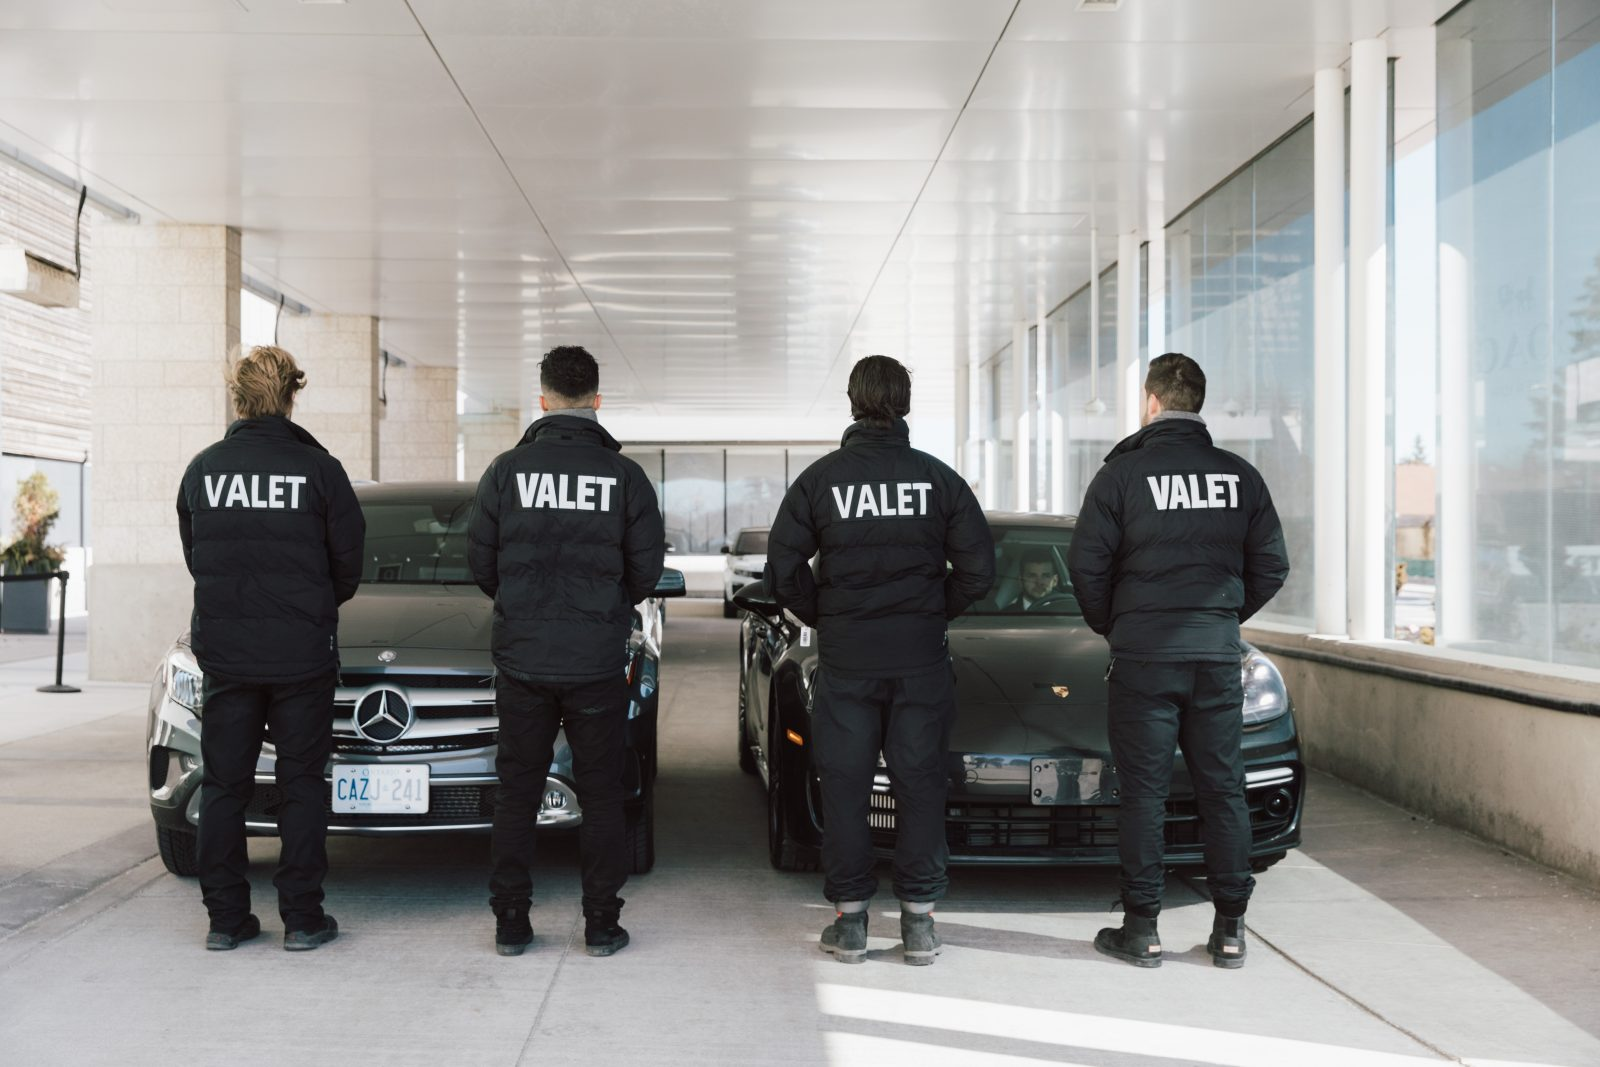 Valet parking chauffeur waiting to serve you better